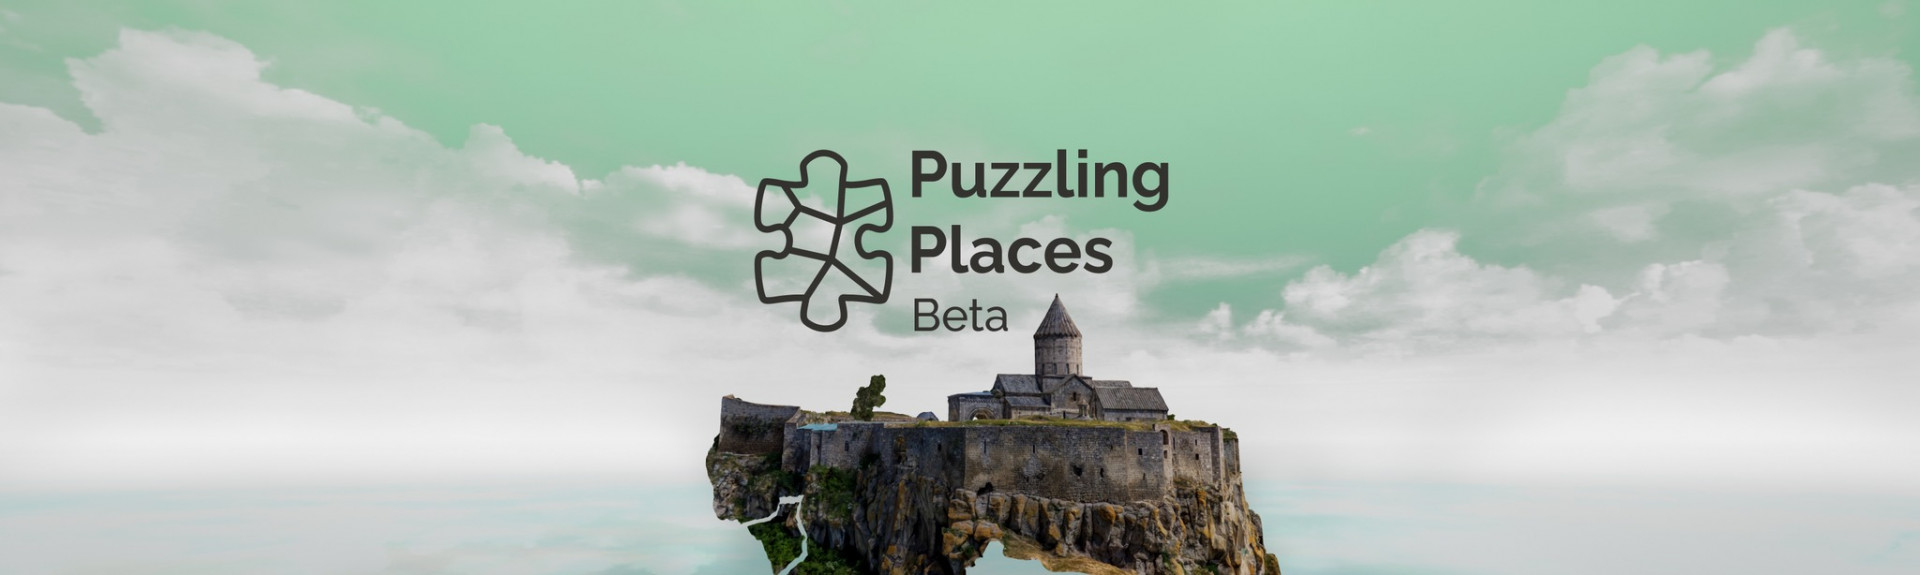 Puzzling Places - Beta